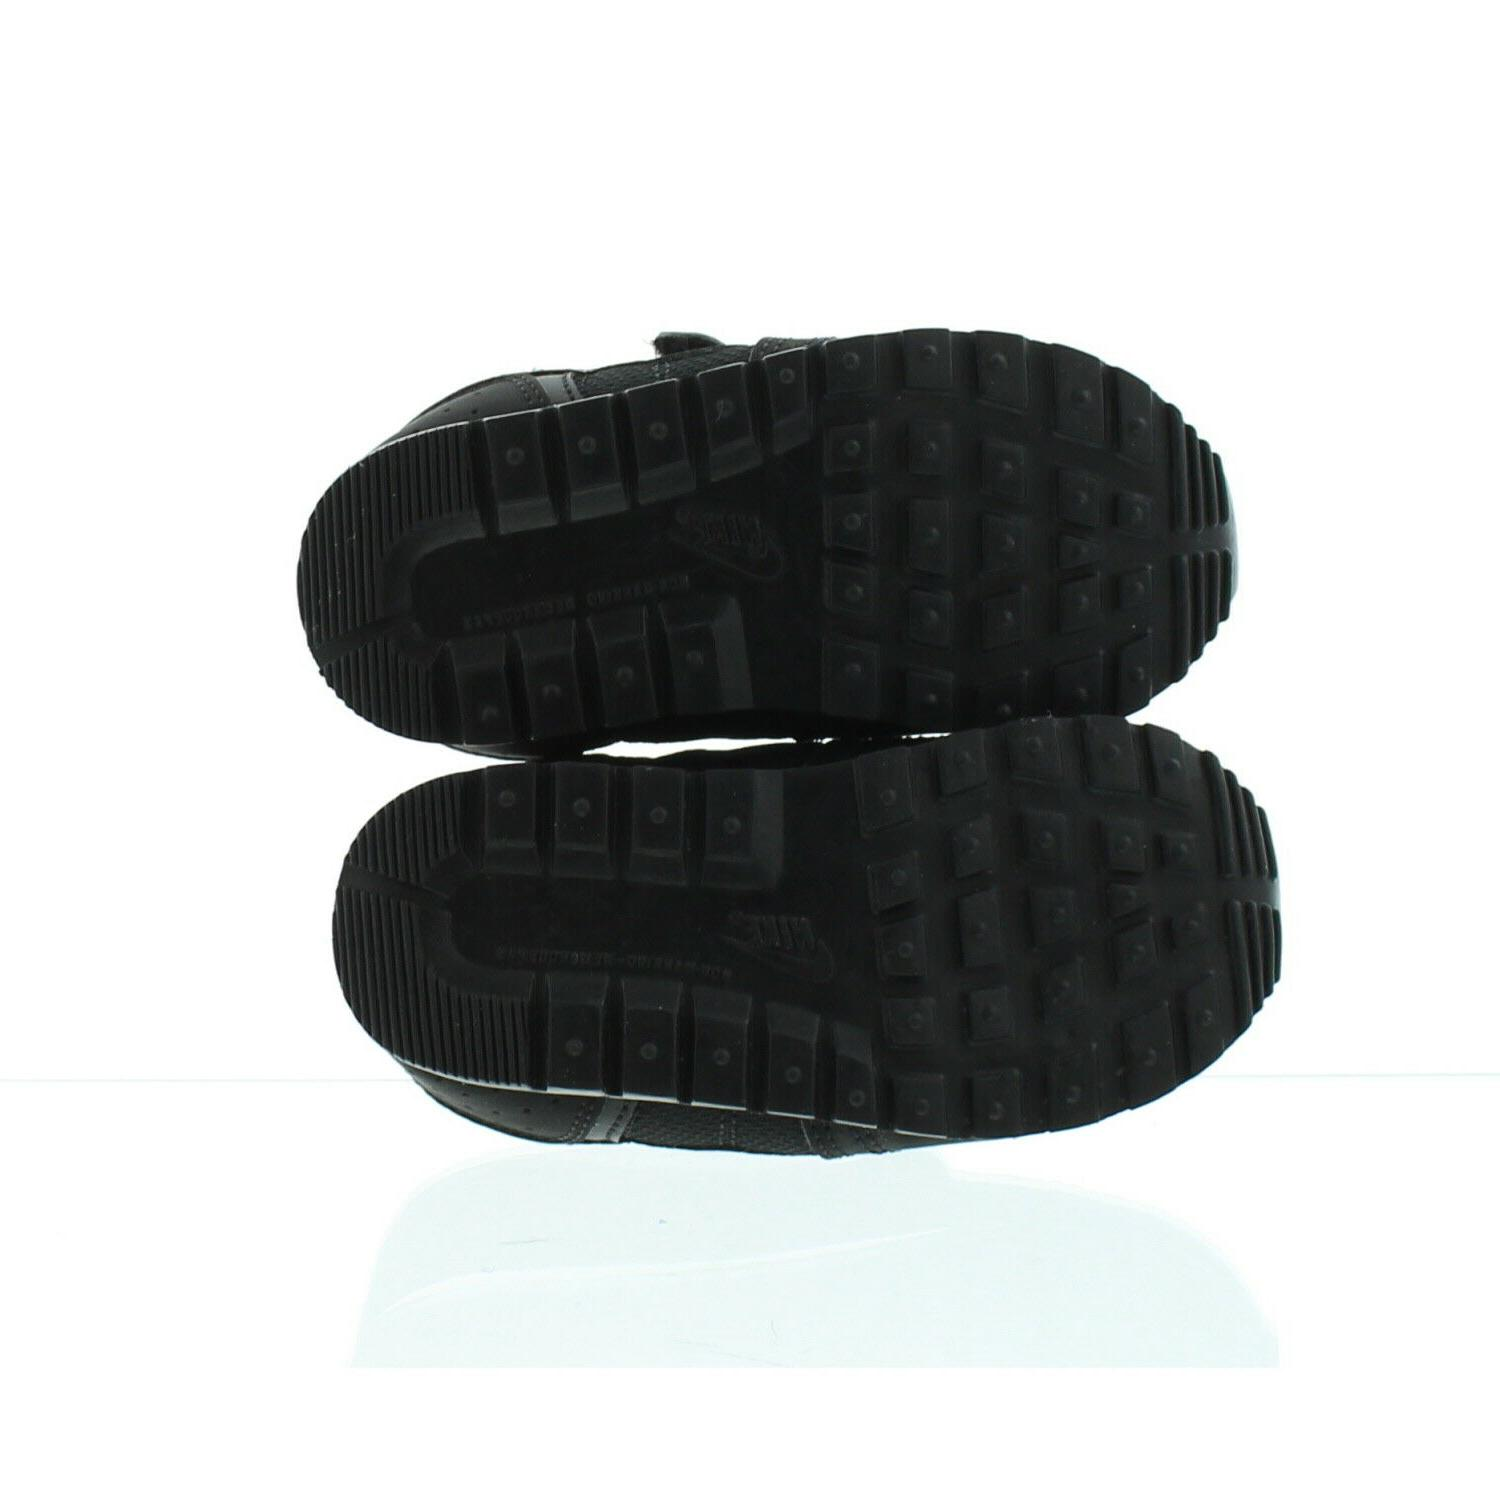 Nike 652966 MD Runner Low Top Shoes Black